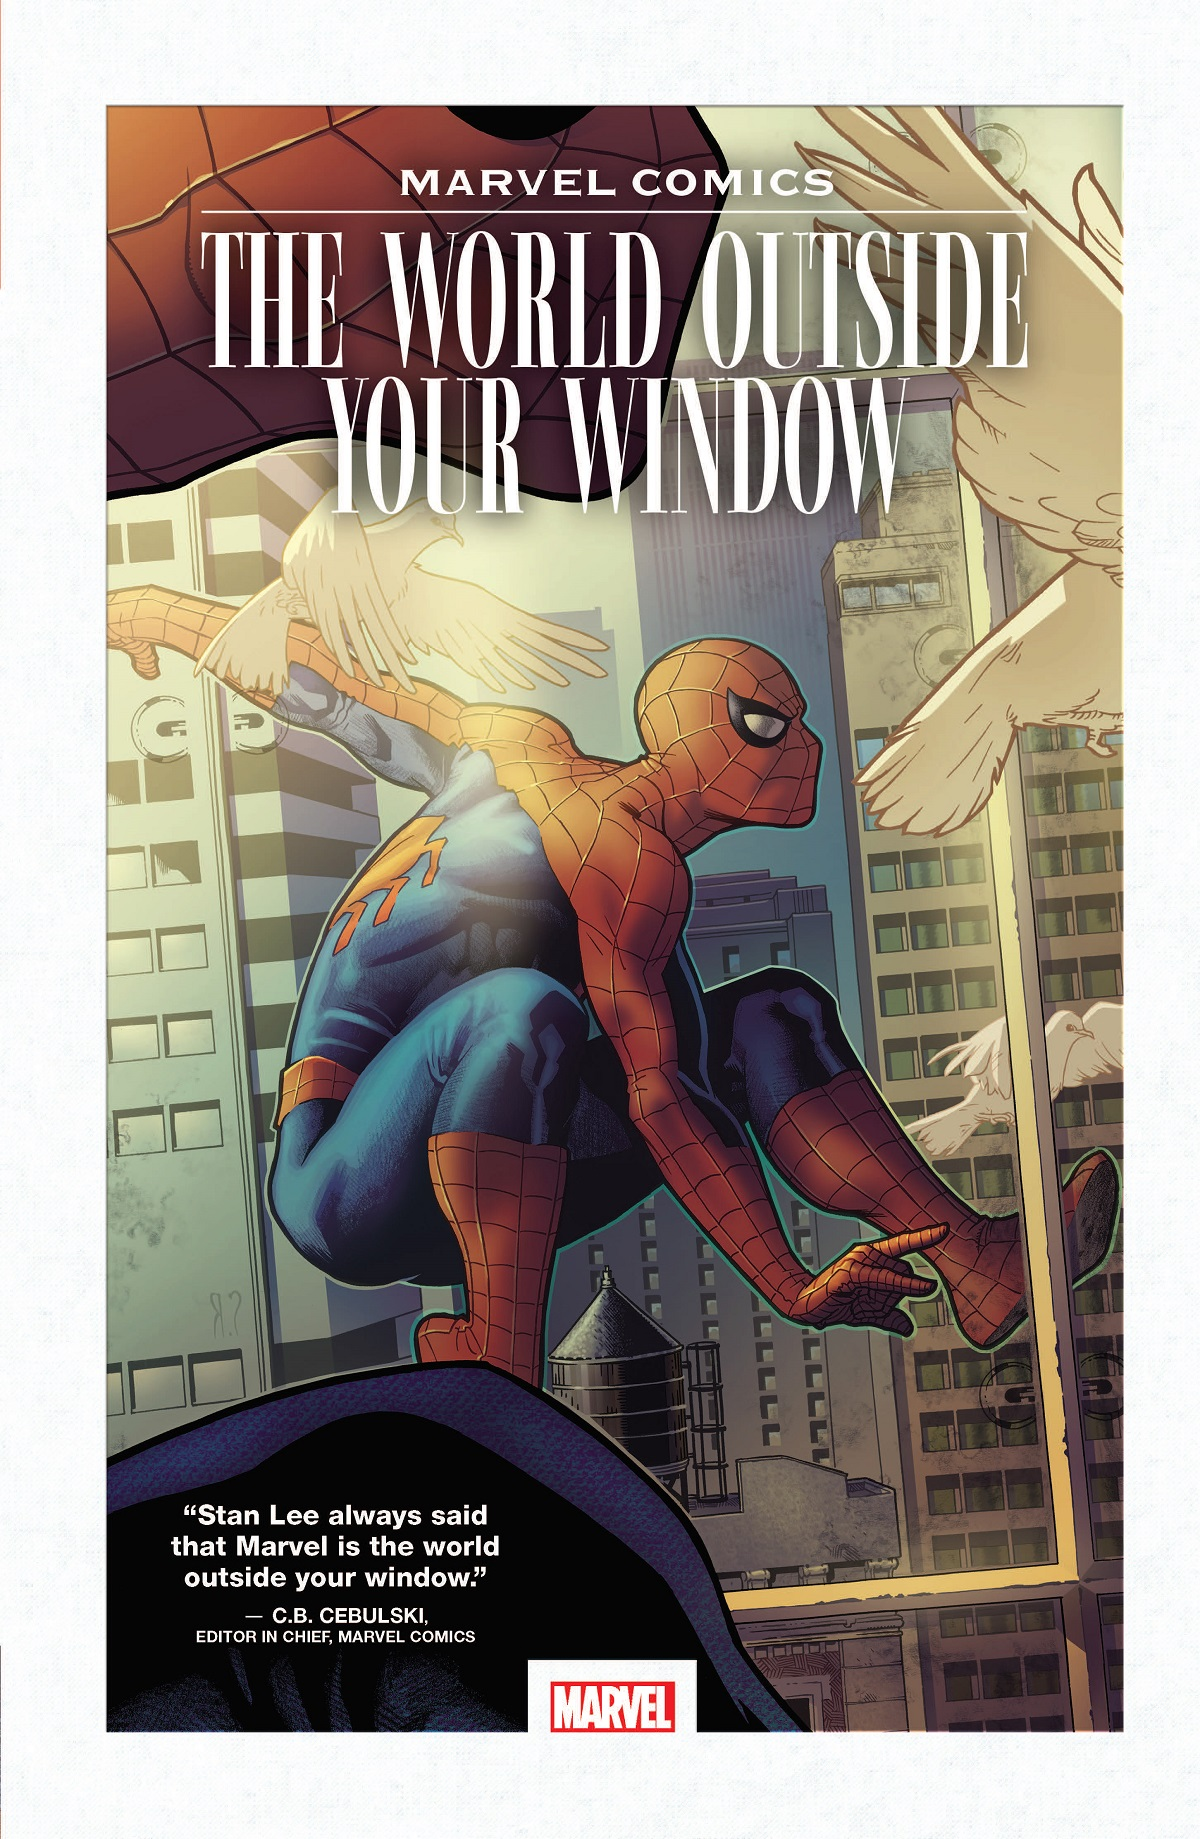 Marvel Comics: The World Outside Your Window (Hardcover)